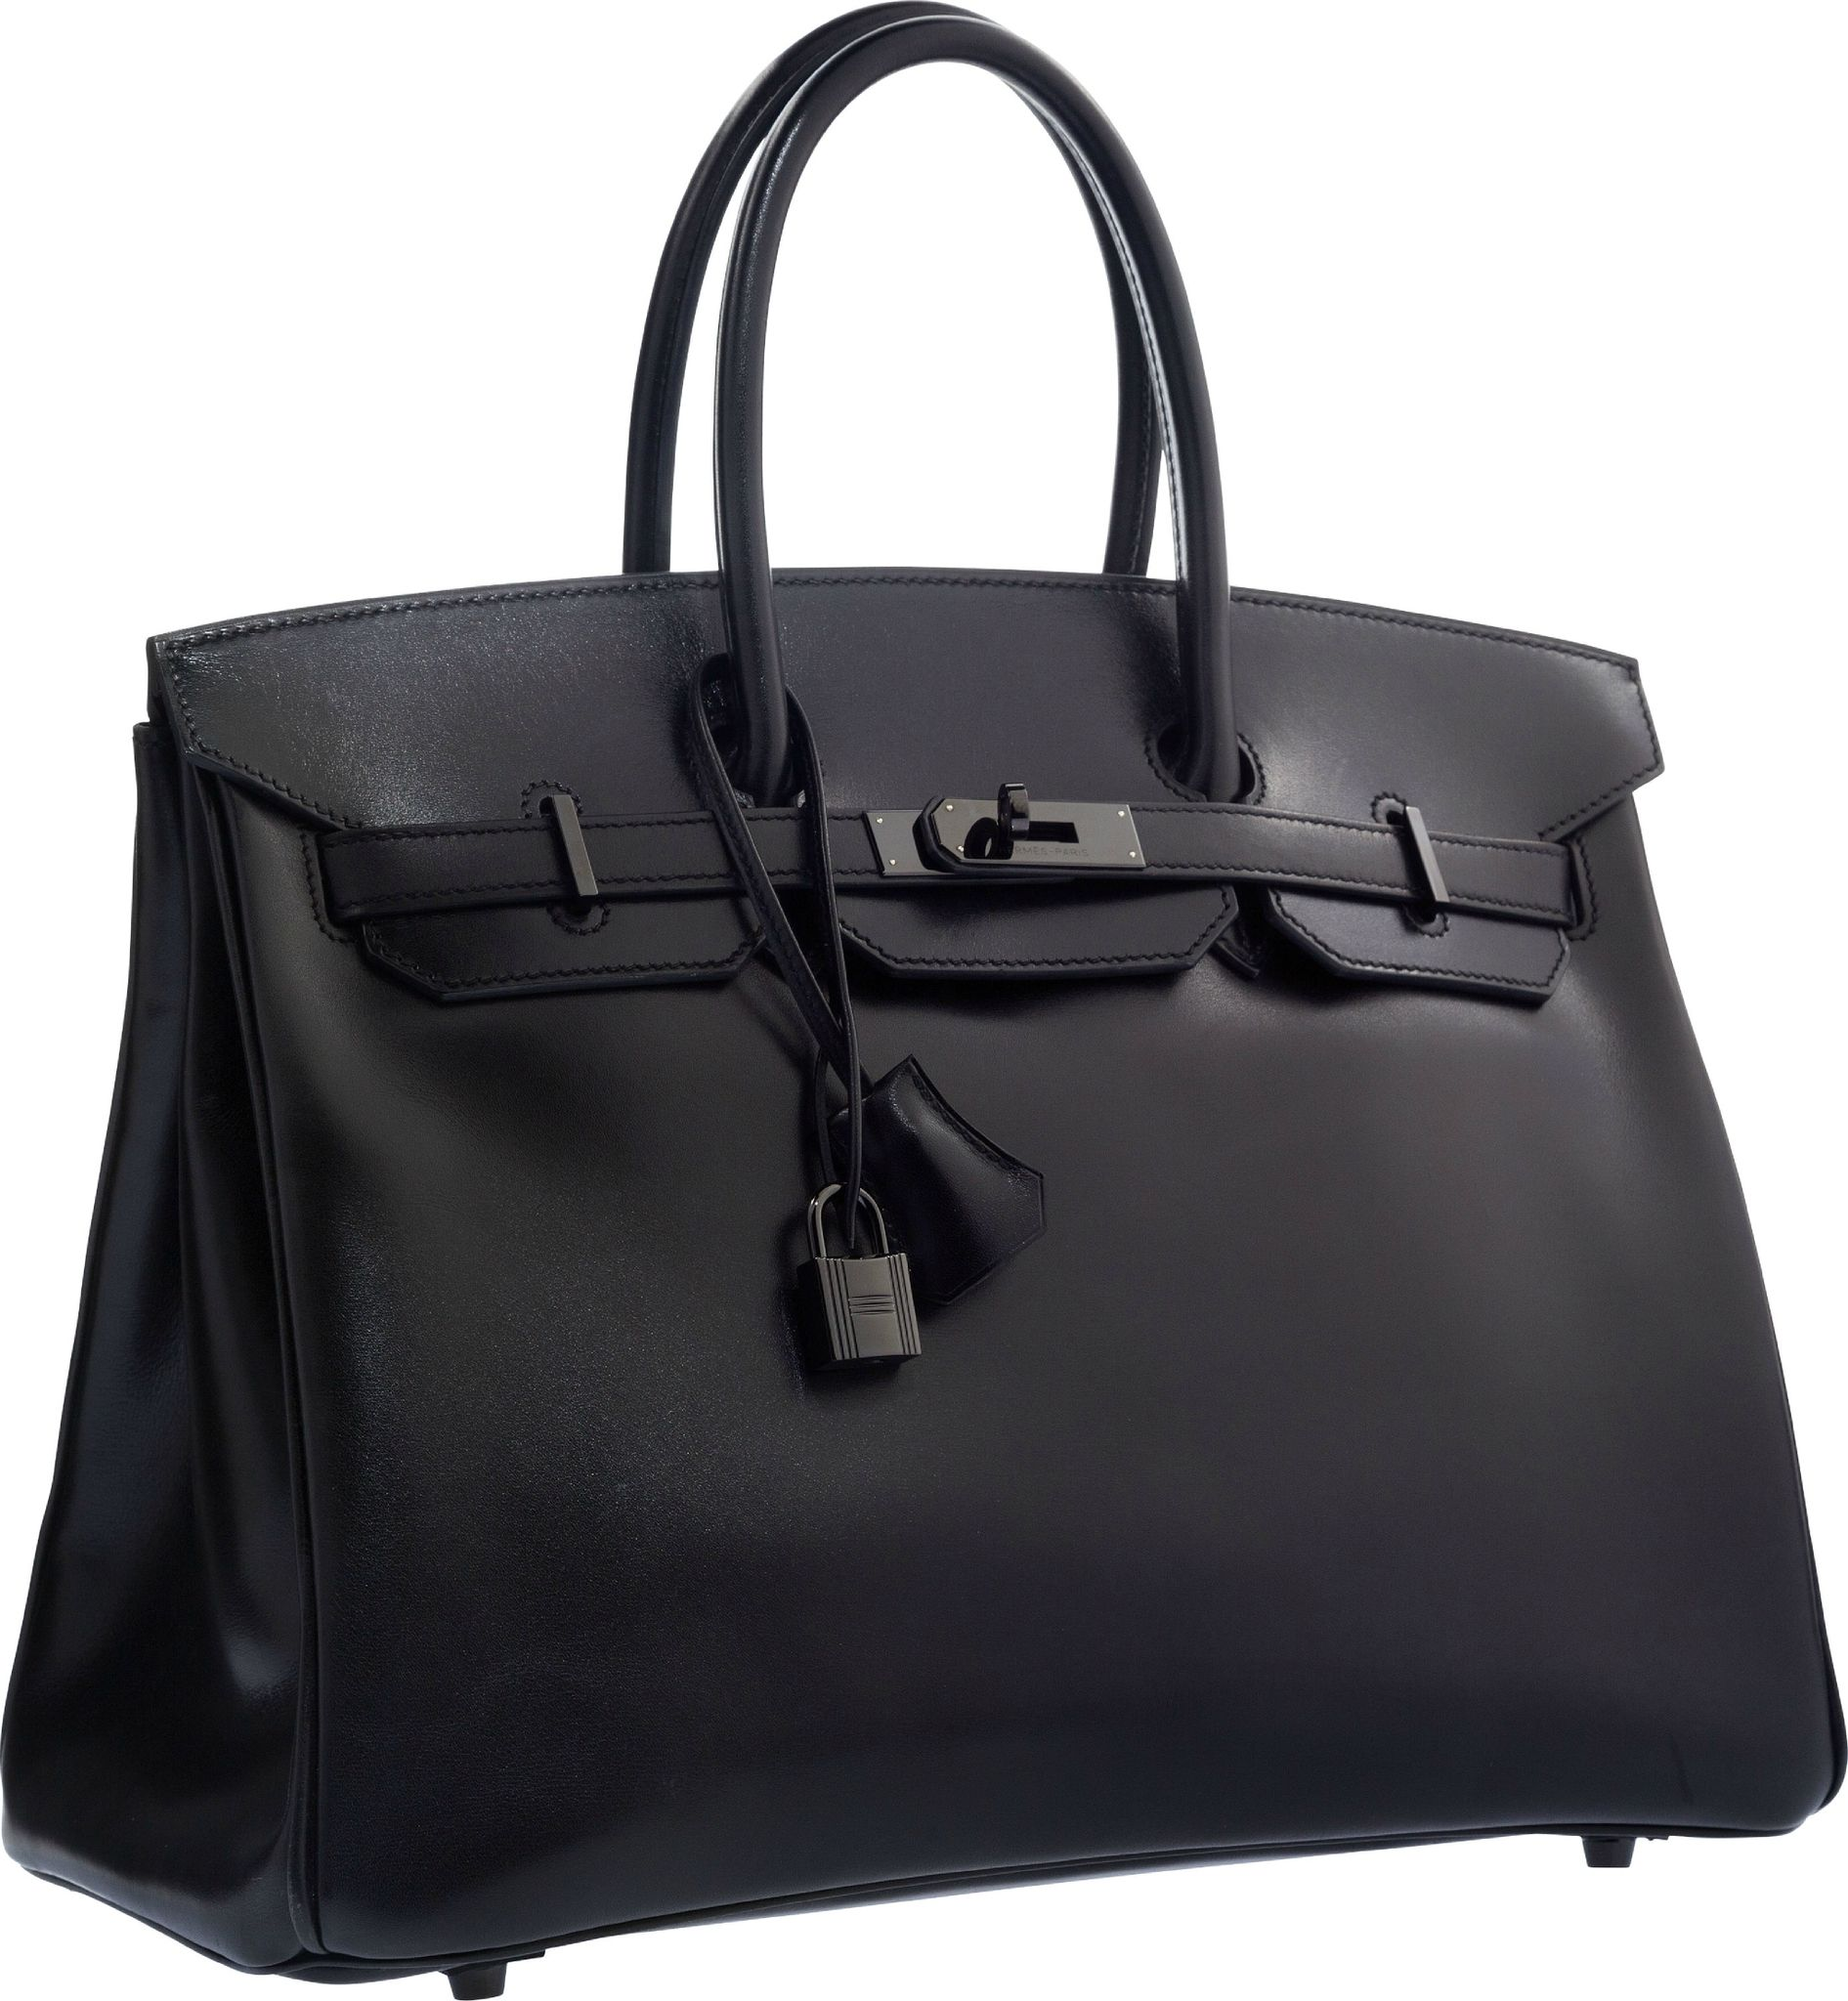 Hermès Limited Edition 35cm So Black Calf Box Leather Birkin Bag With Pvd Hardware